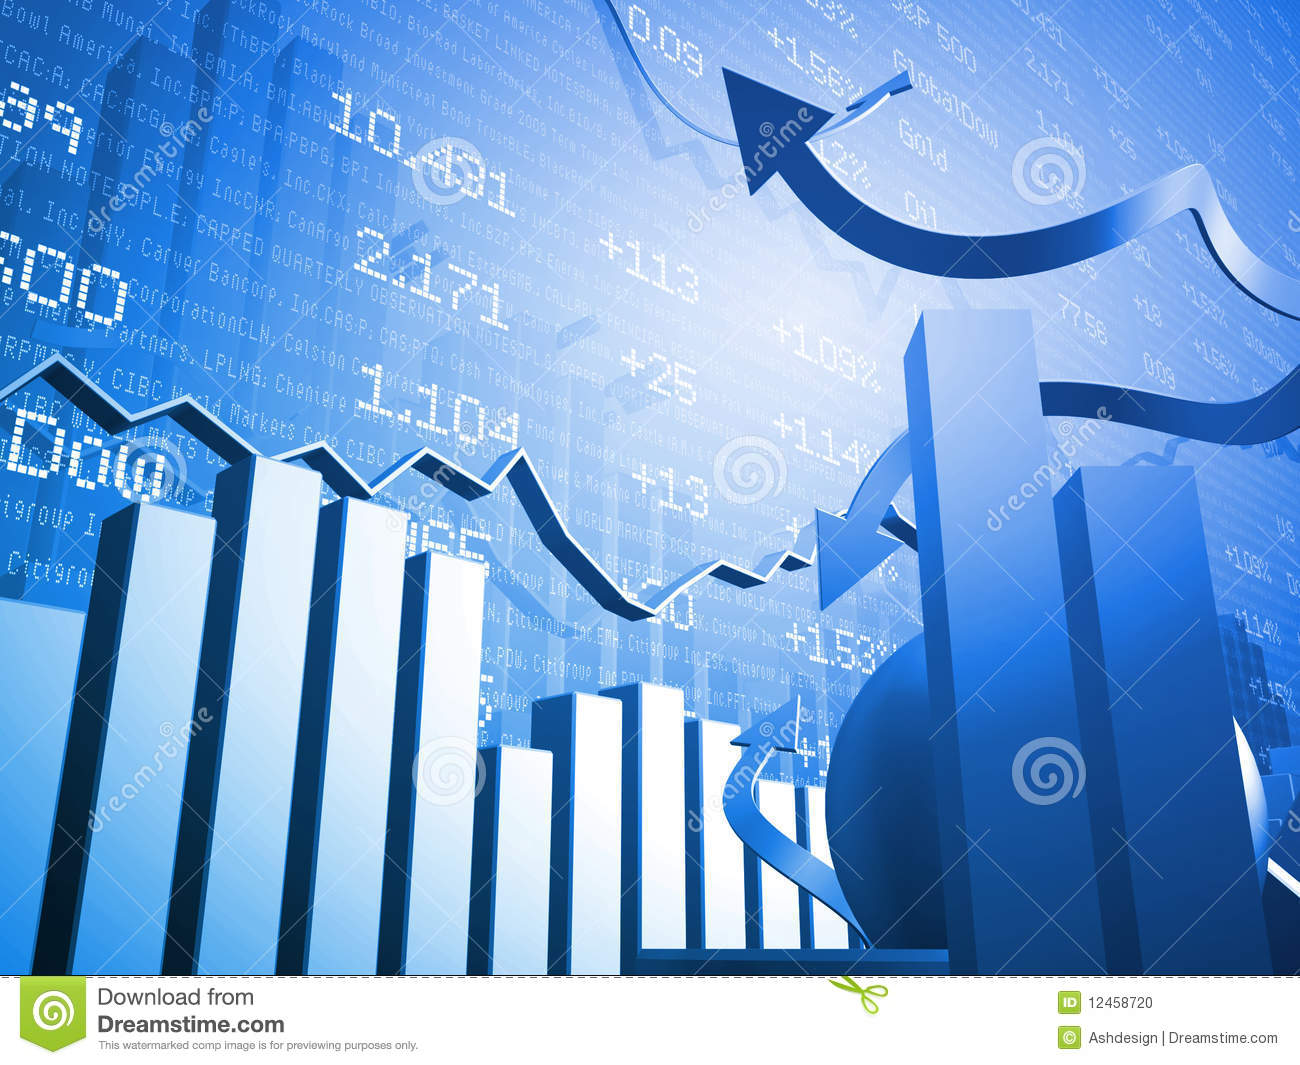 Stock Markets Up Stock Market Up And Down Arrows Stock Photo Image 12458720